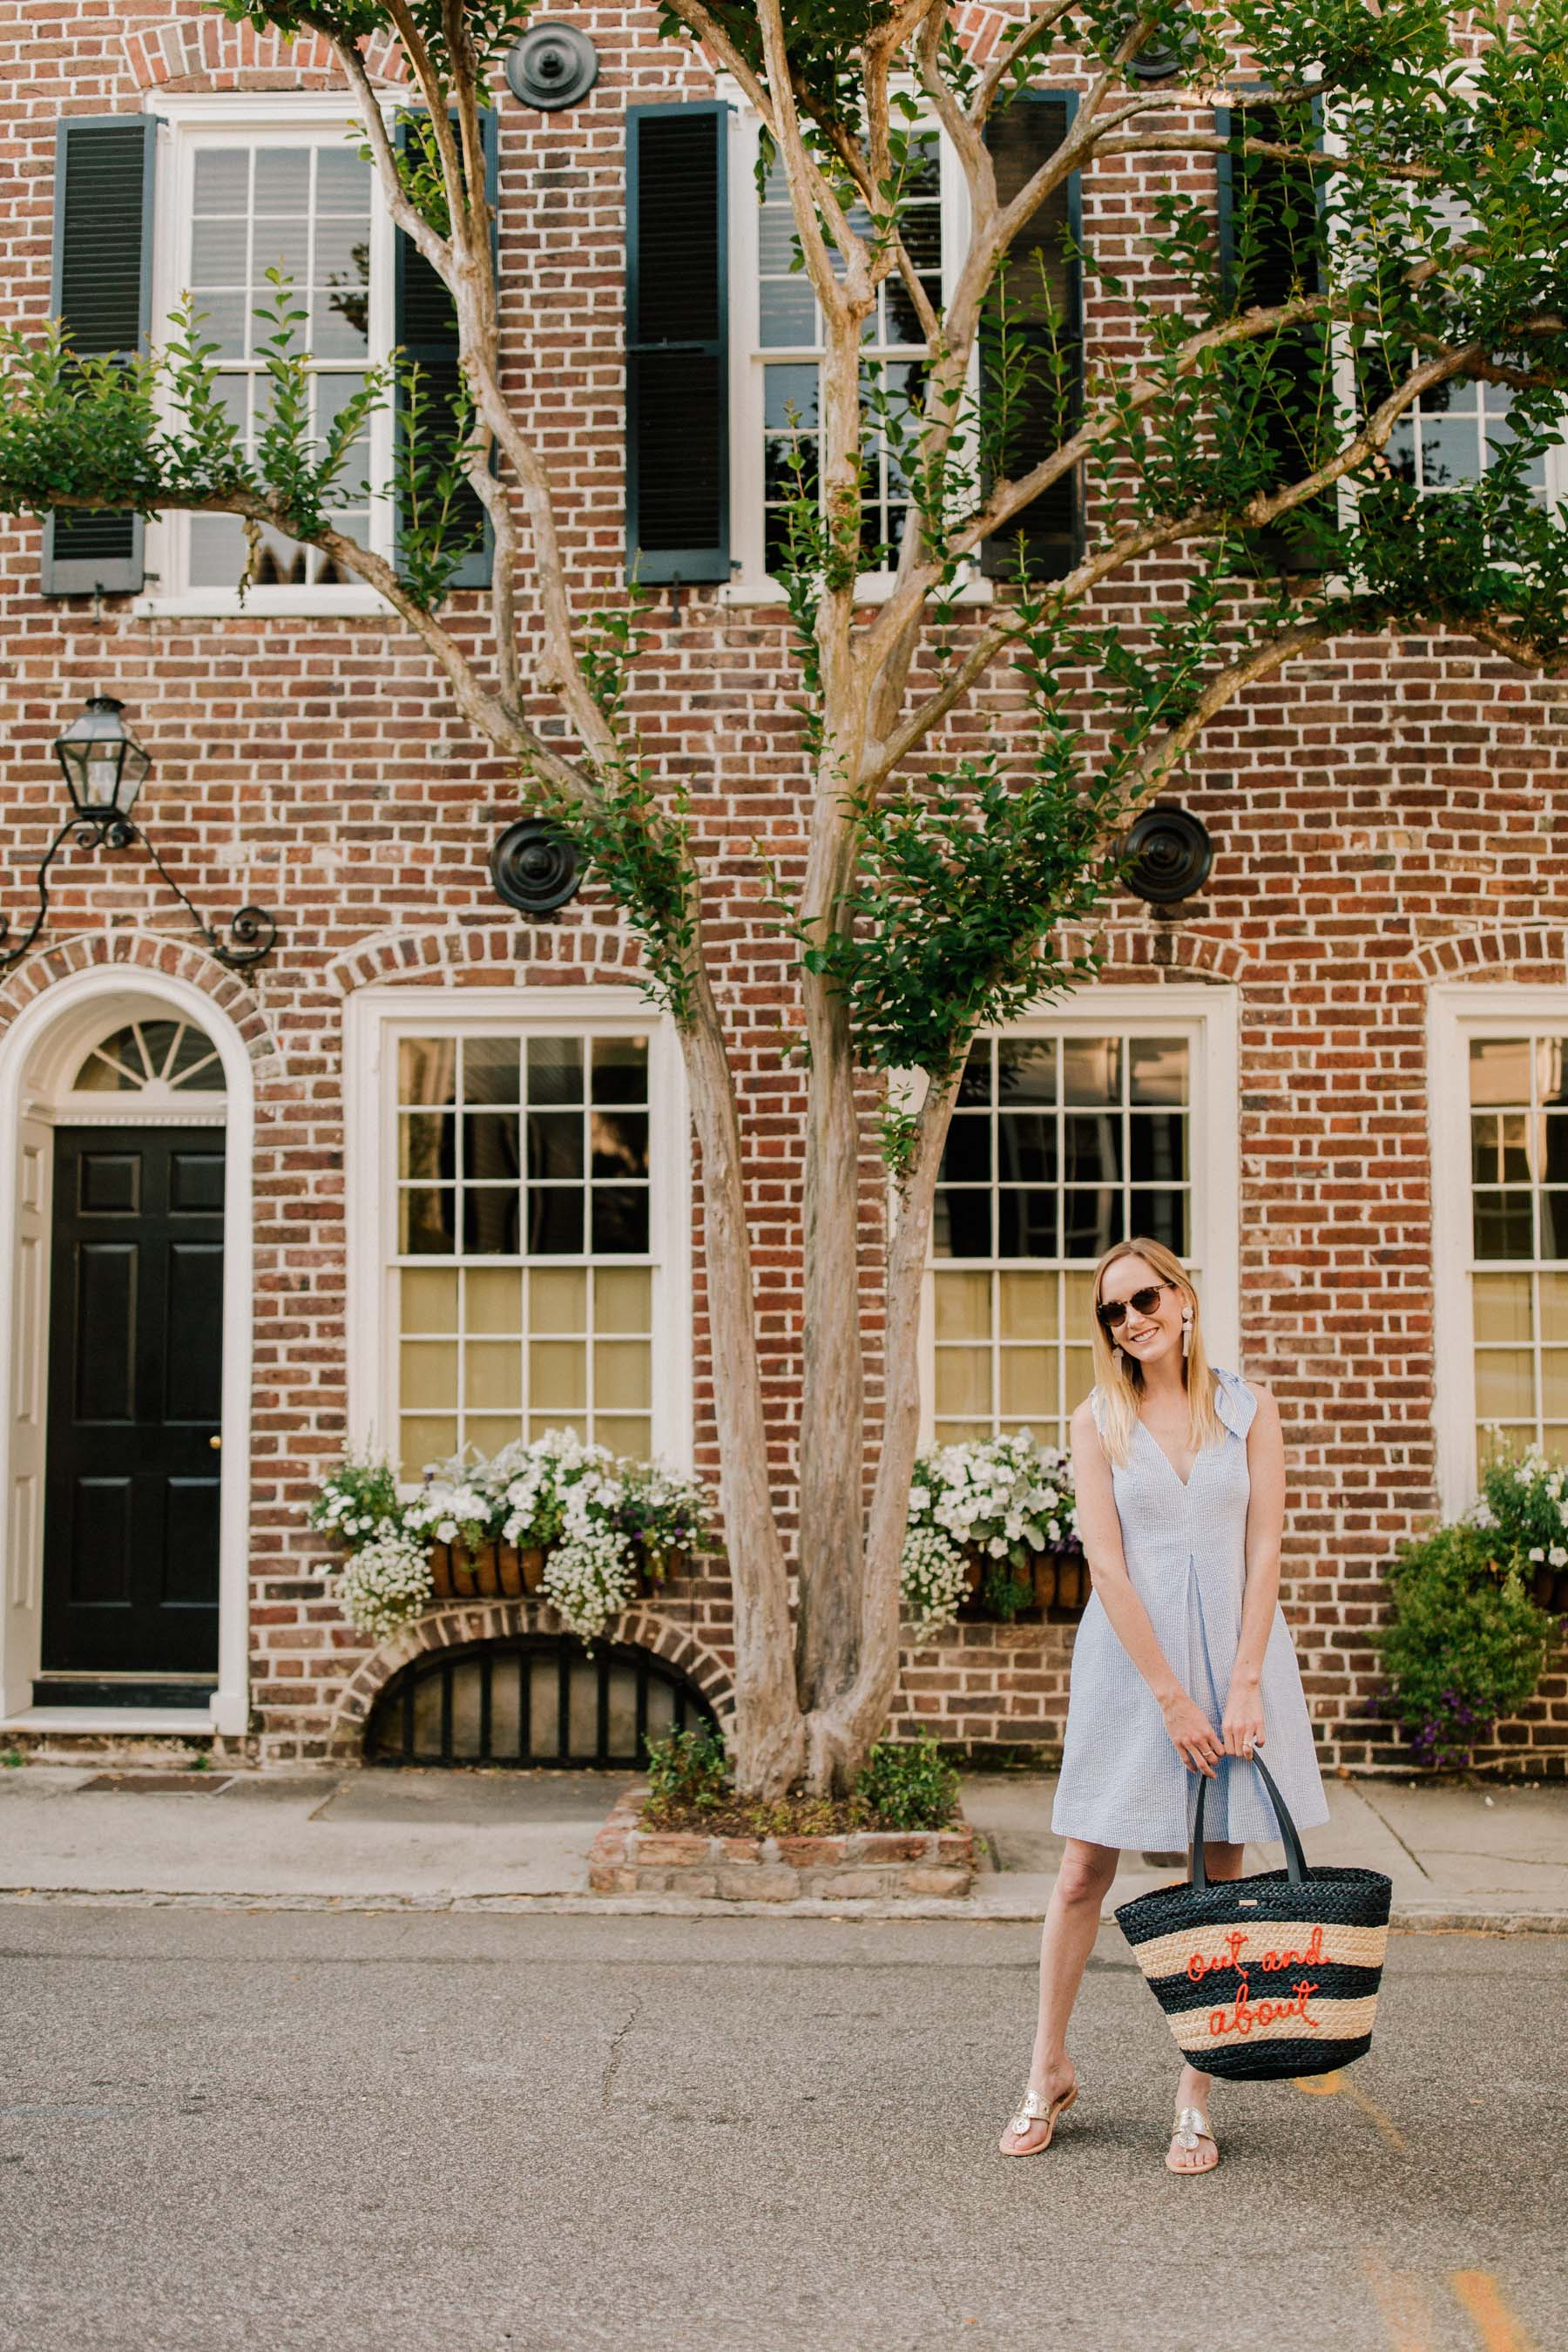 Stress Free Travel Wardrobe: Kelly in the City